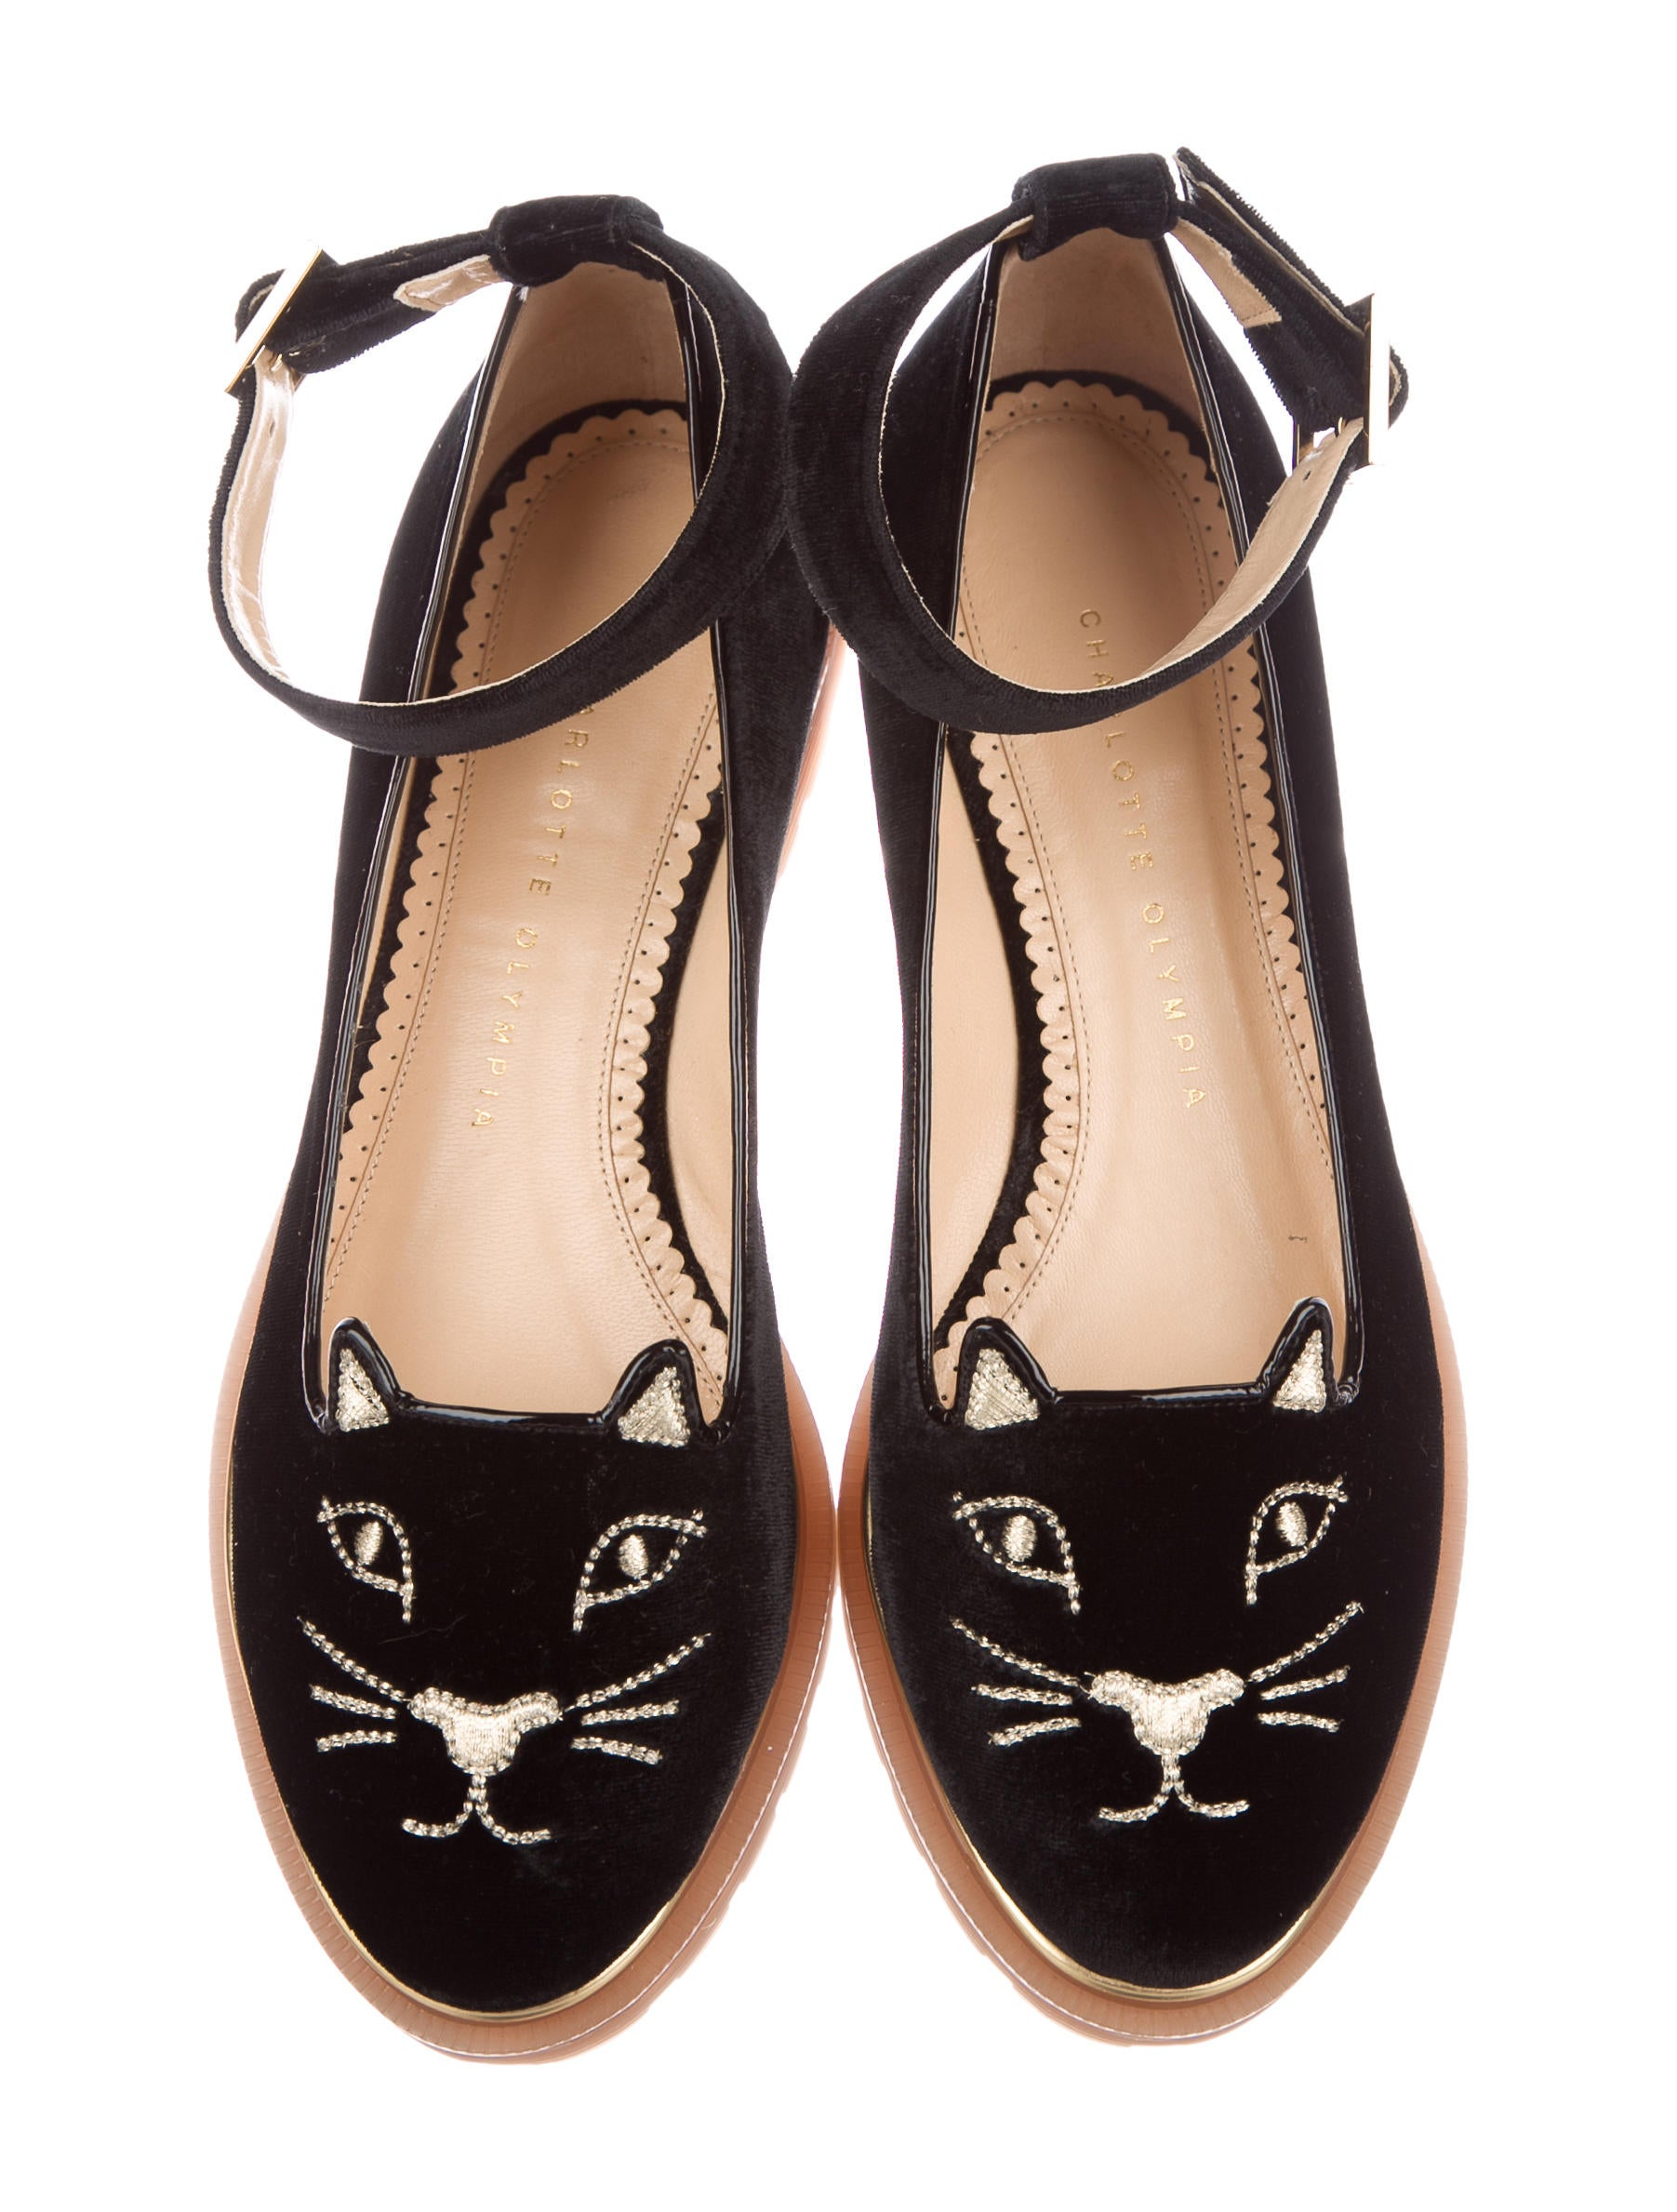 Charlotte Olympia Creeping Kitty Velvet Flats w/ Tags cheap sale view 2014 unisex cheap online fmNRw0